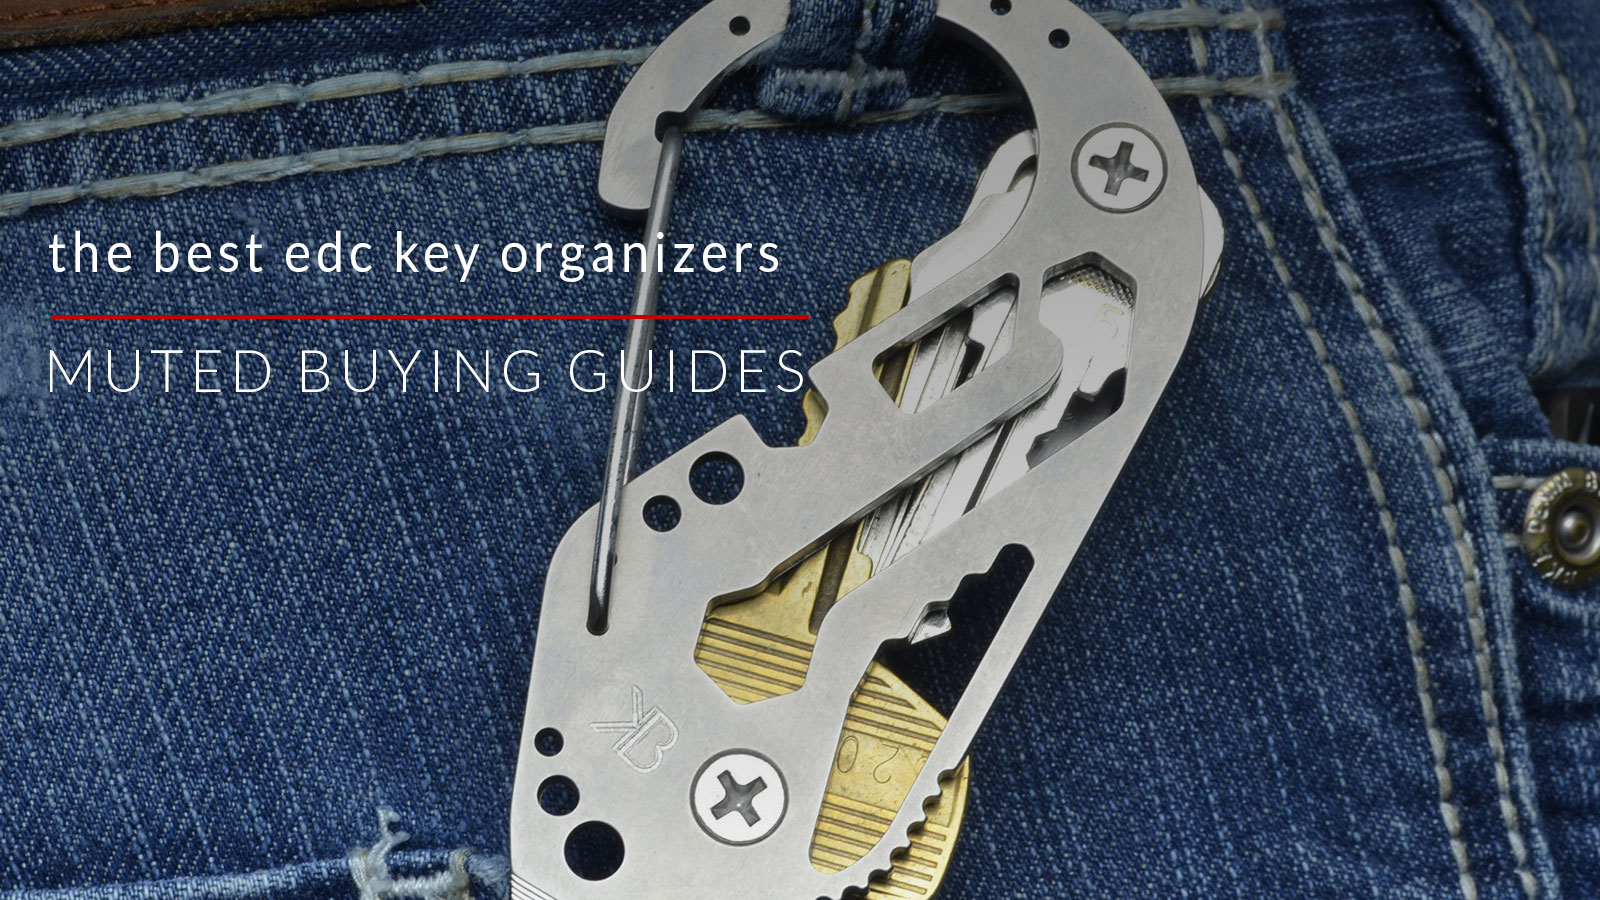 The Best Everyday Carry Key Organizers